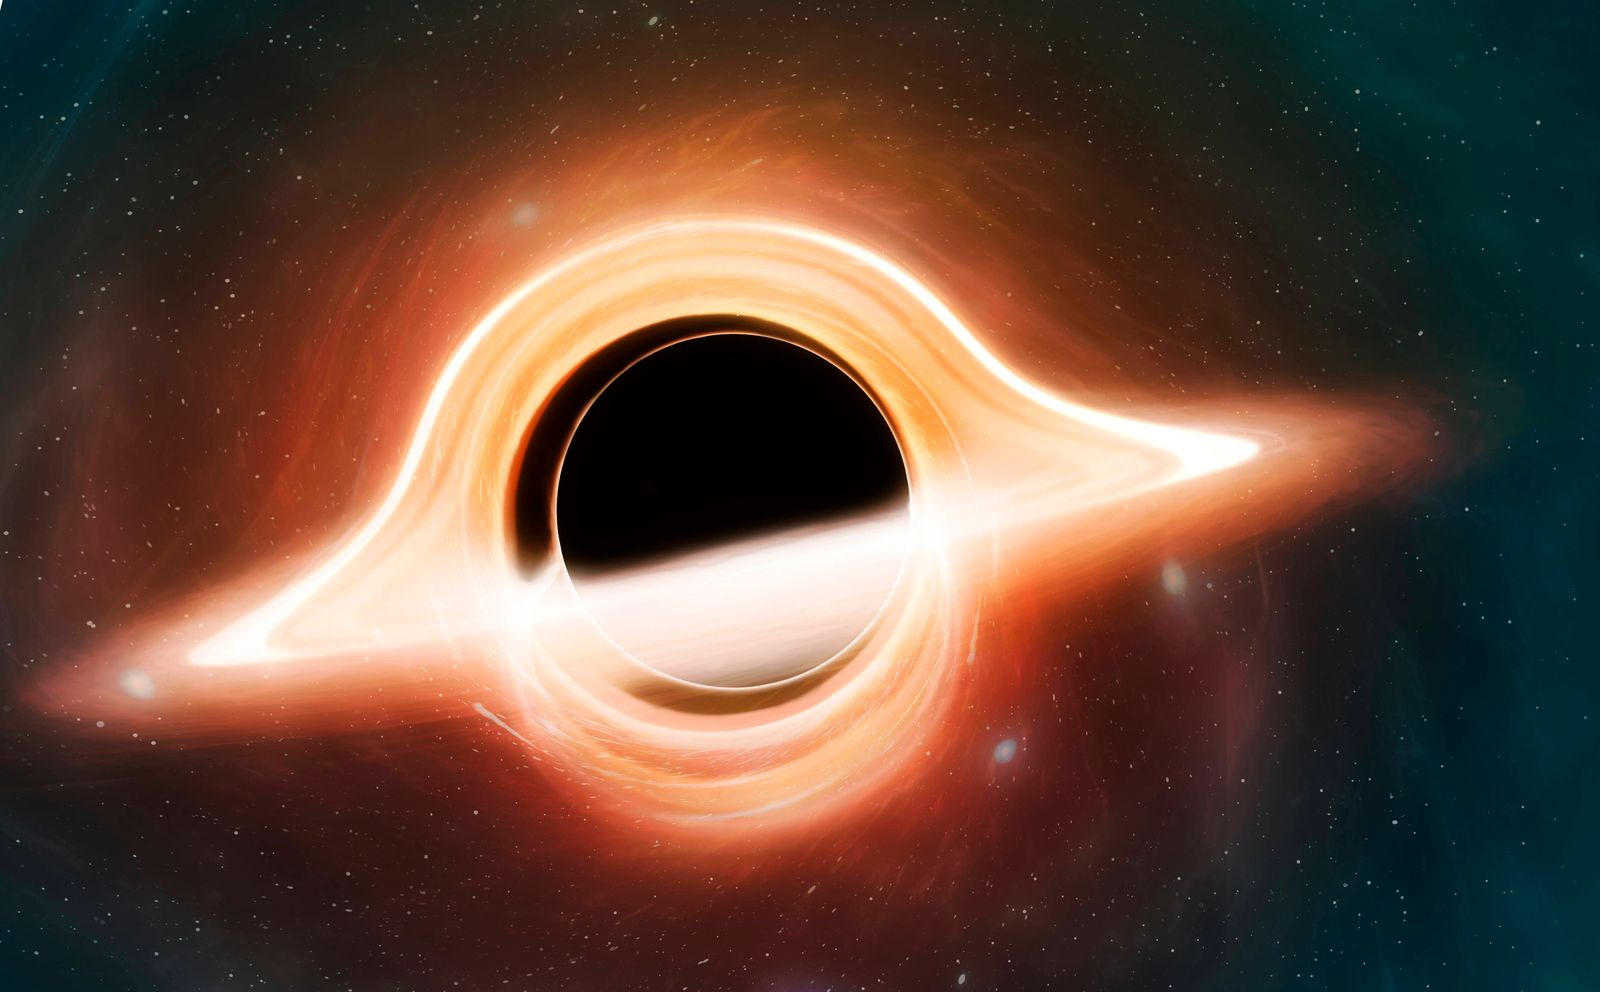 Black hole seen from a planet, illustration Illustration of a black hole. A black hole is a region of spacetime where th